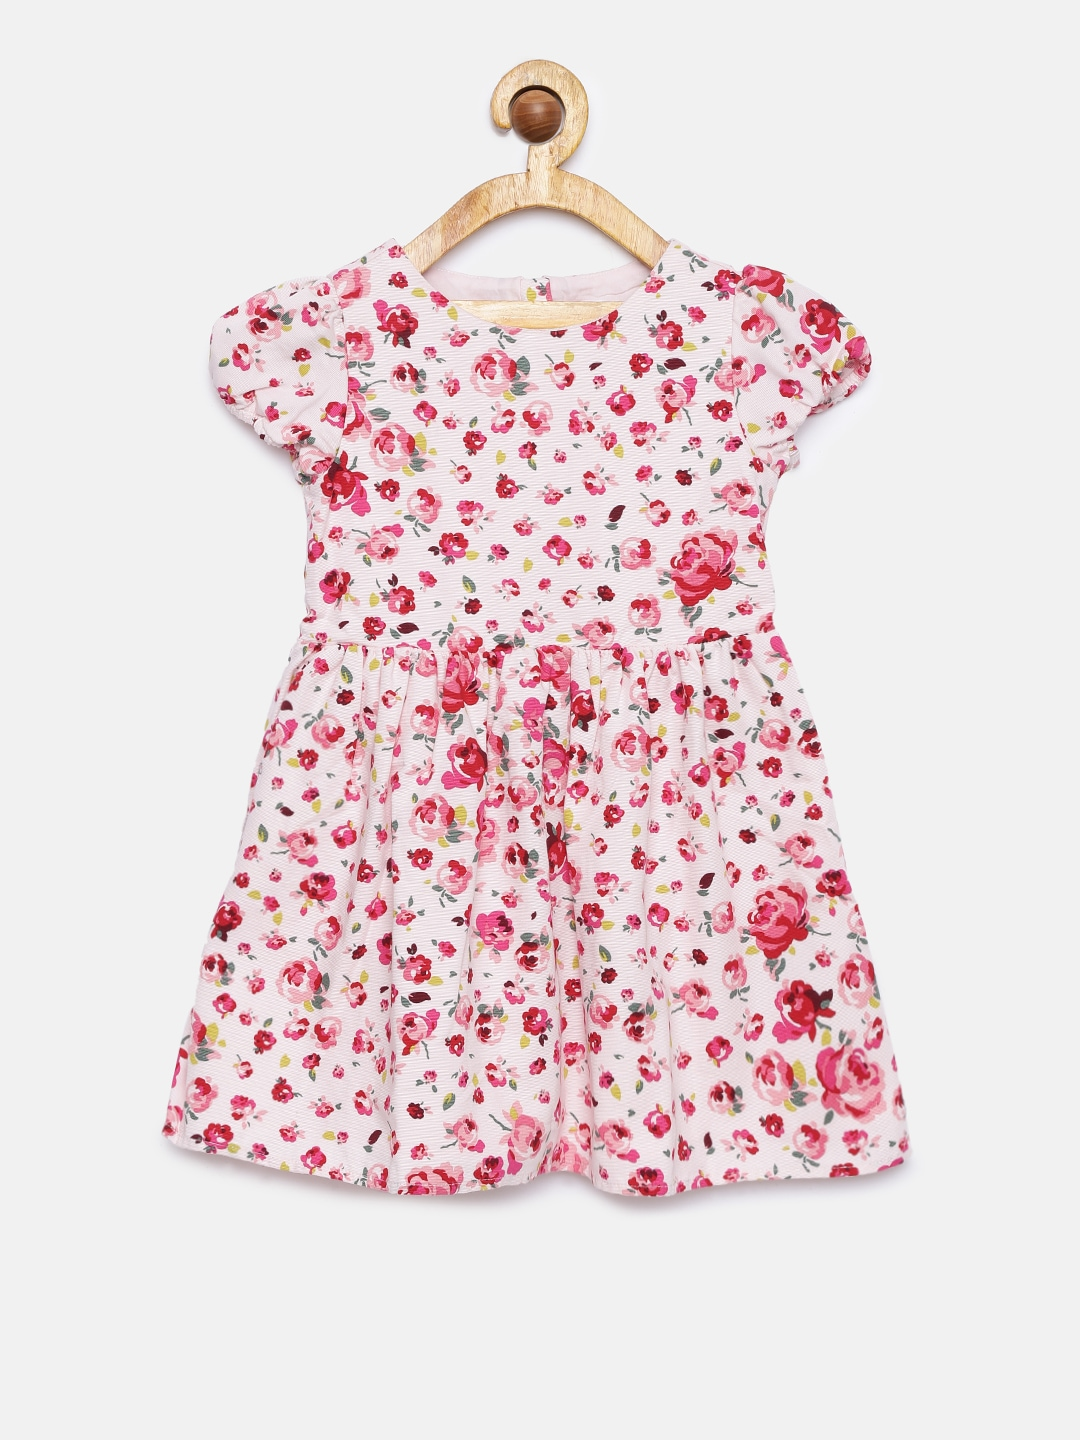 090f4a195 Baby Girls Dresses - Buy Dresses for Baby Girl Online in India